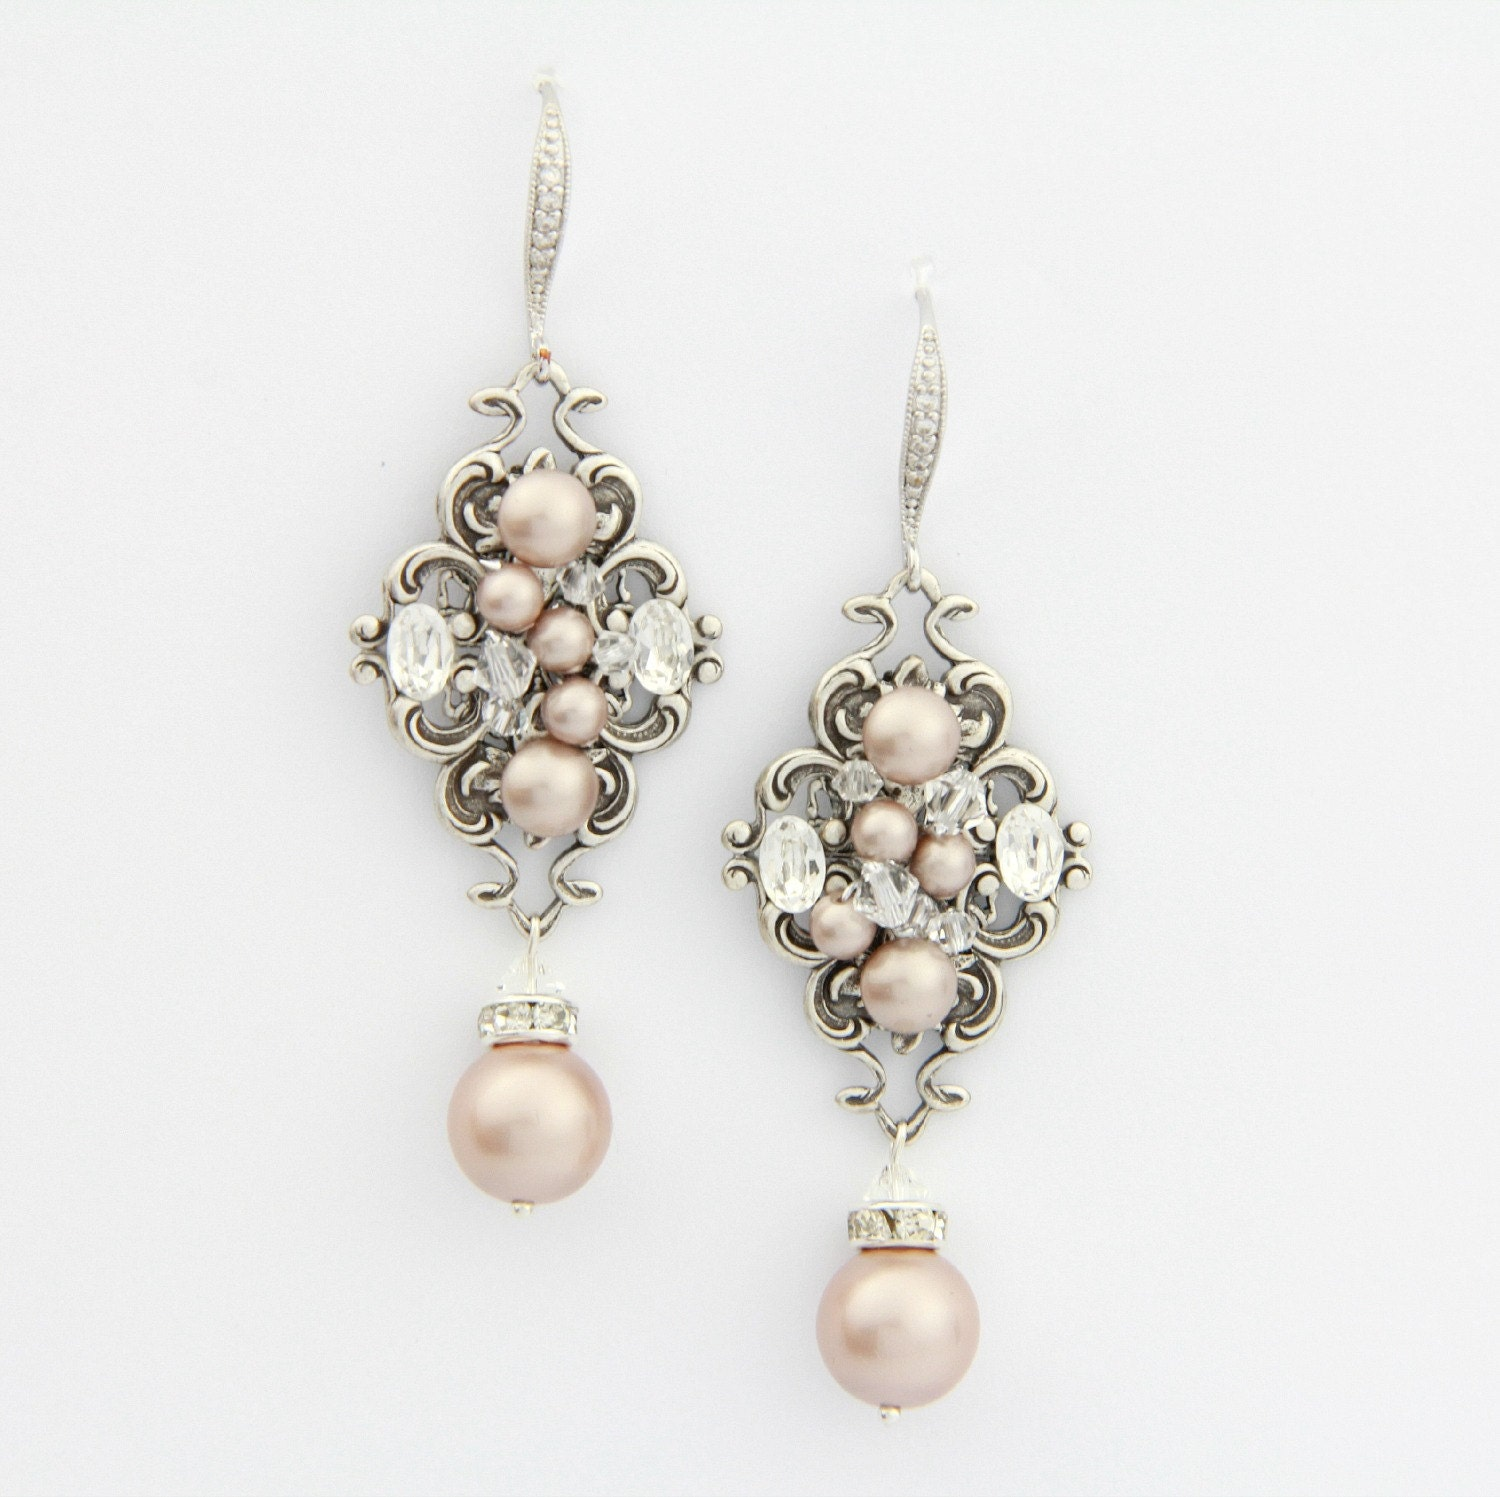 Blush champagne pearl earrings chandelier wedding earrings for Jewelry for champagne wedding dress